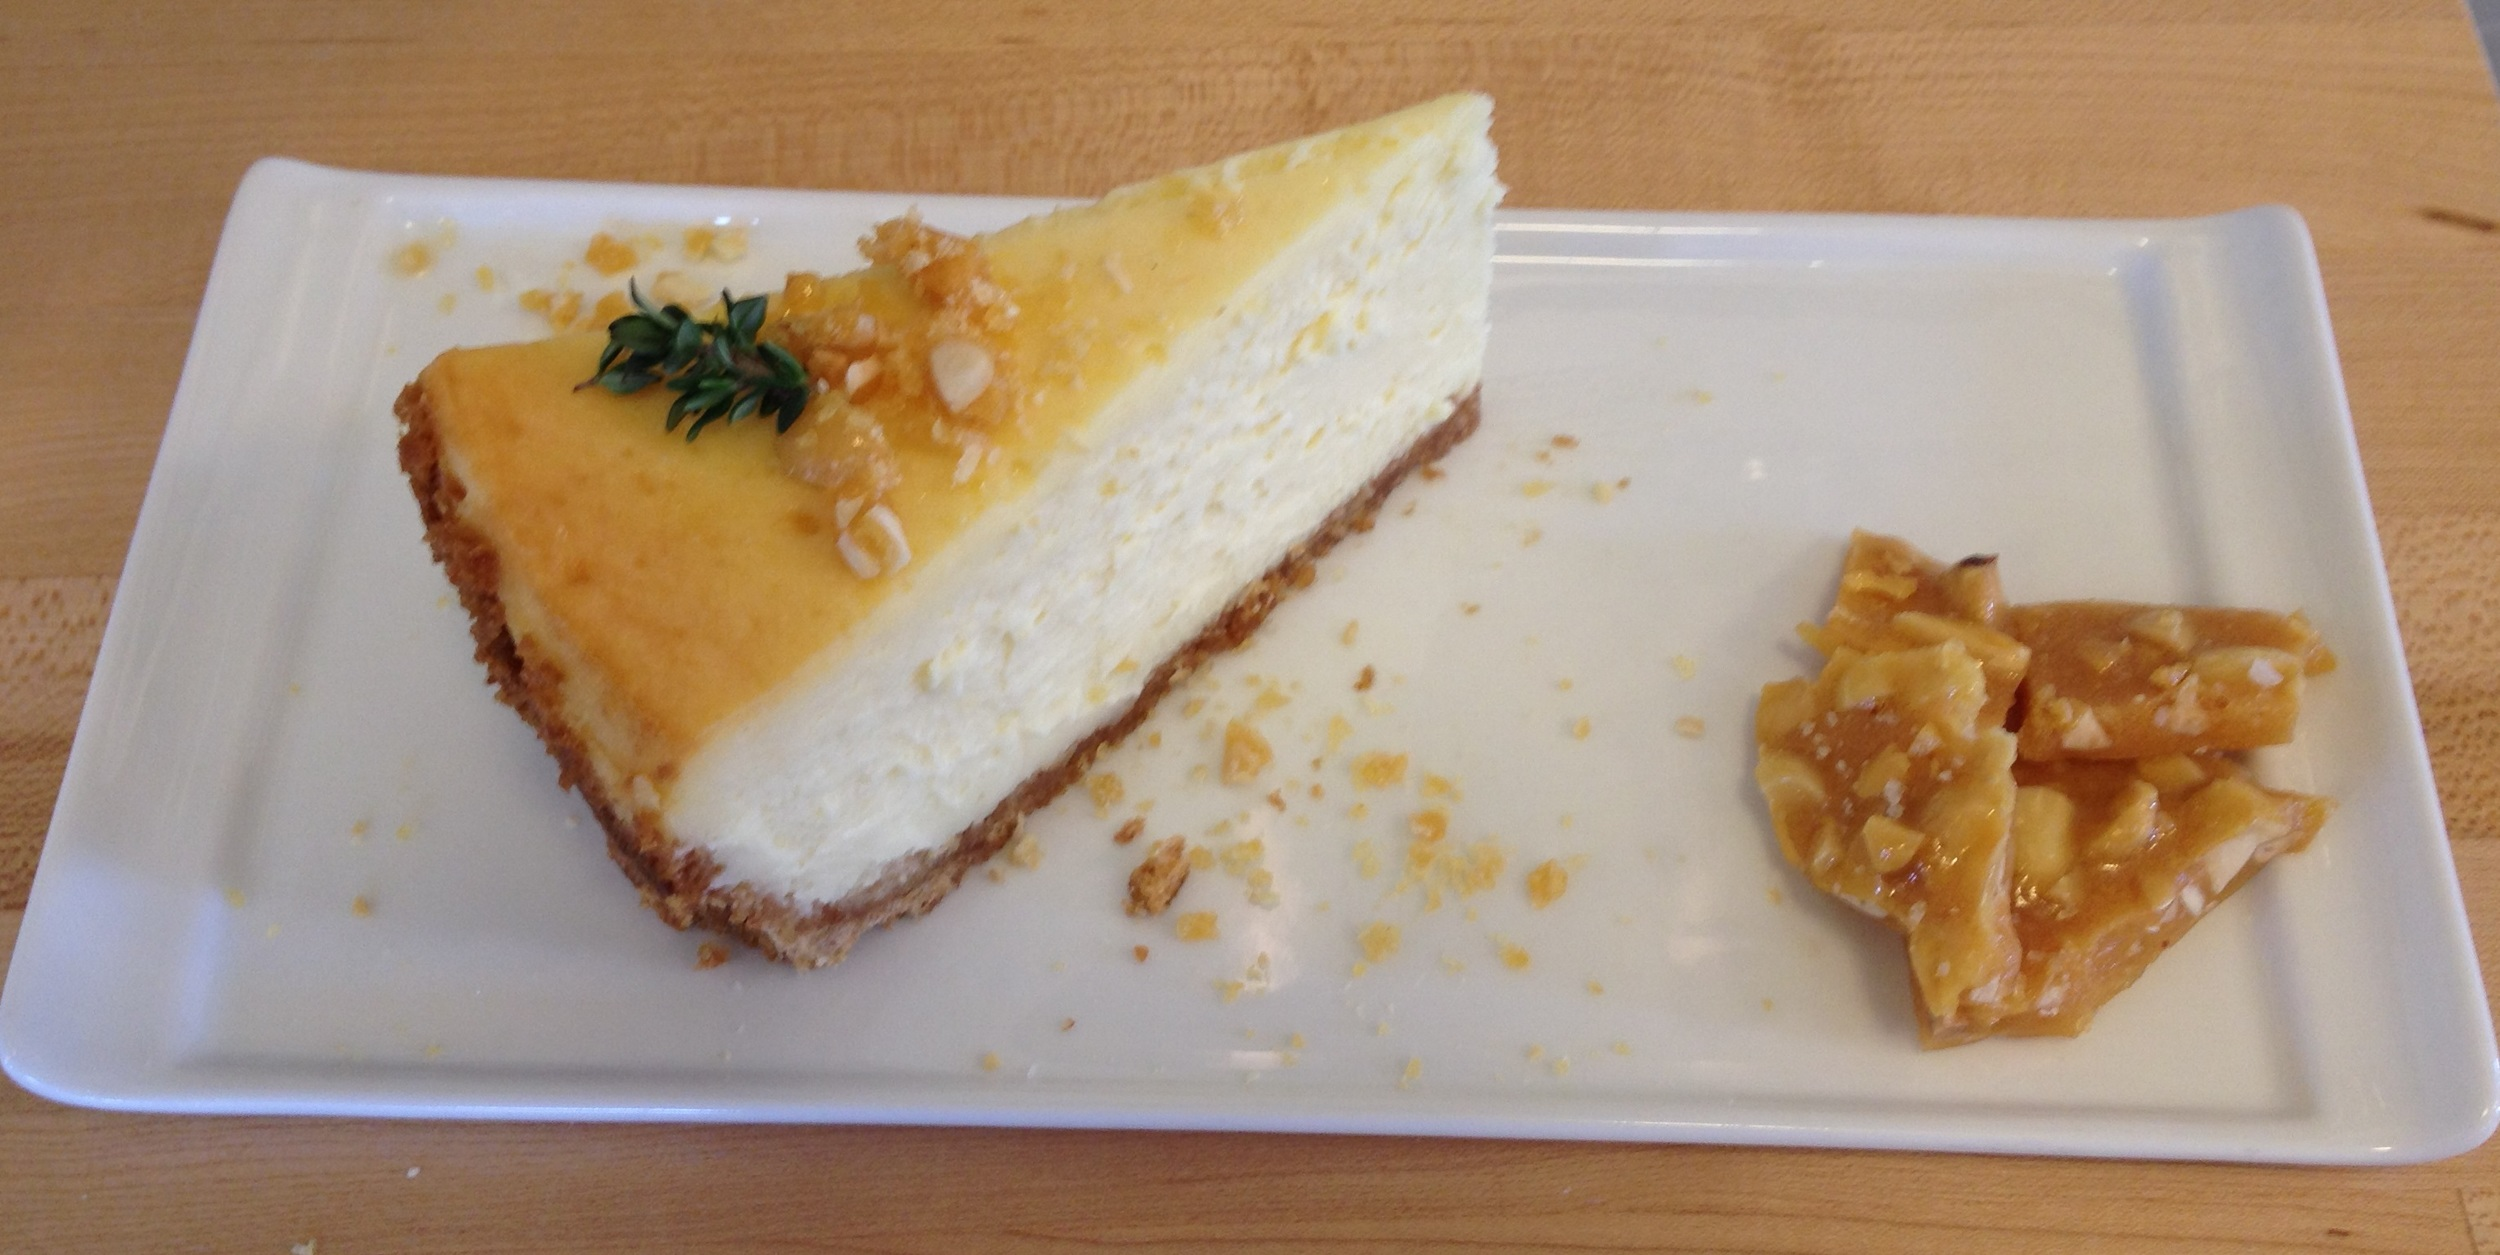 Smooth & creamy cheesecake with homemade almond brittle with San Juan Sea Salt!